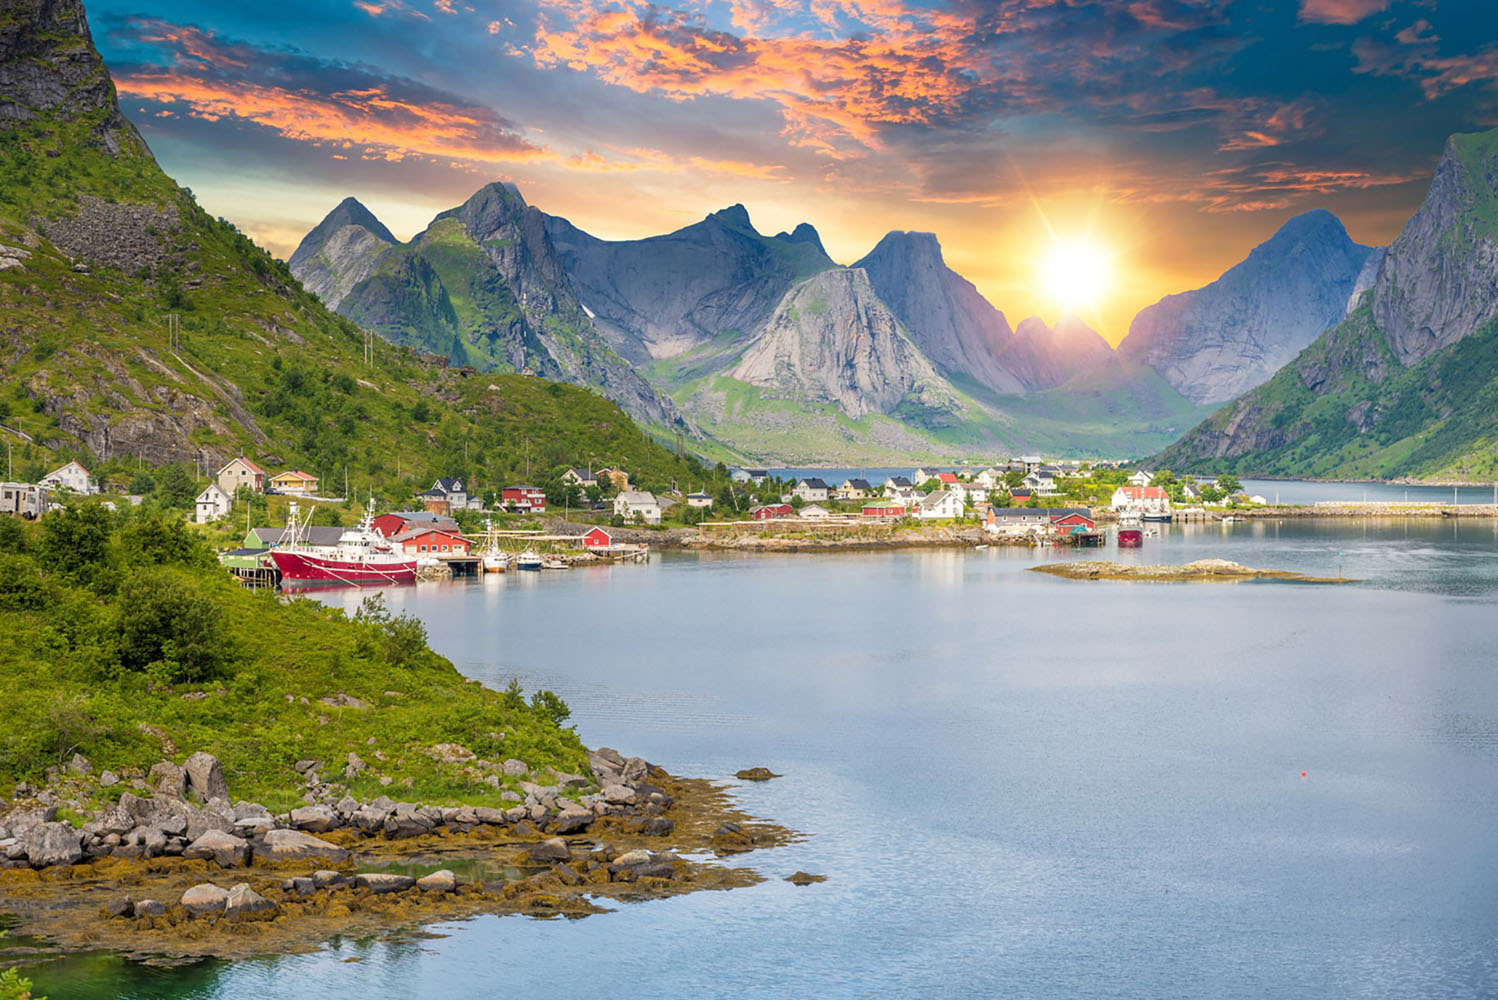 Sunset in the Lofoten Islands in Norway.